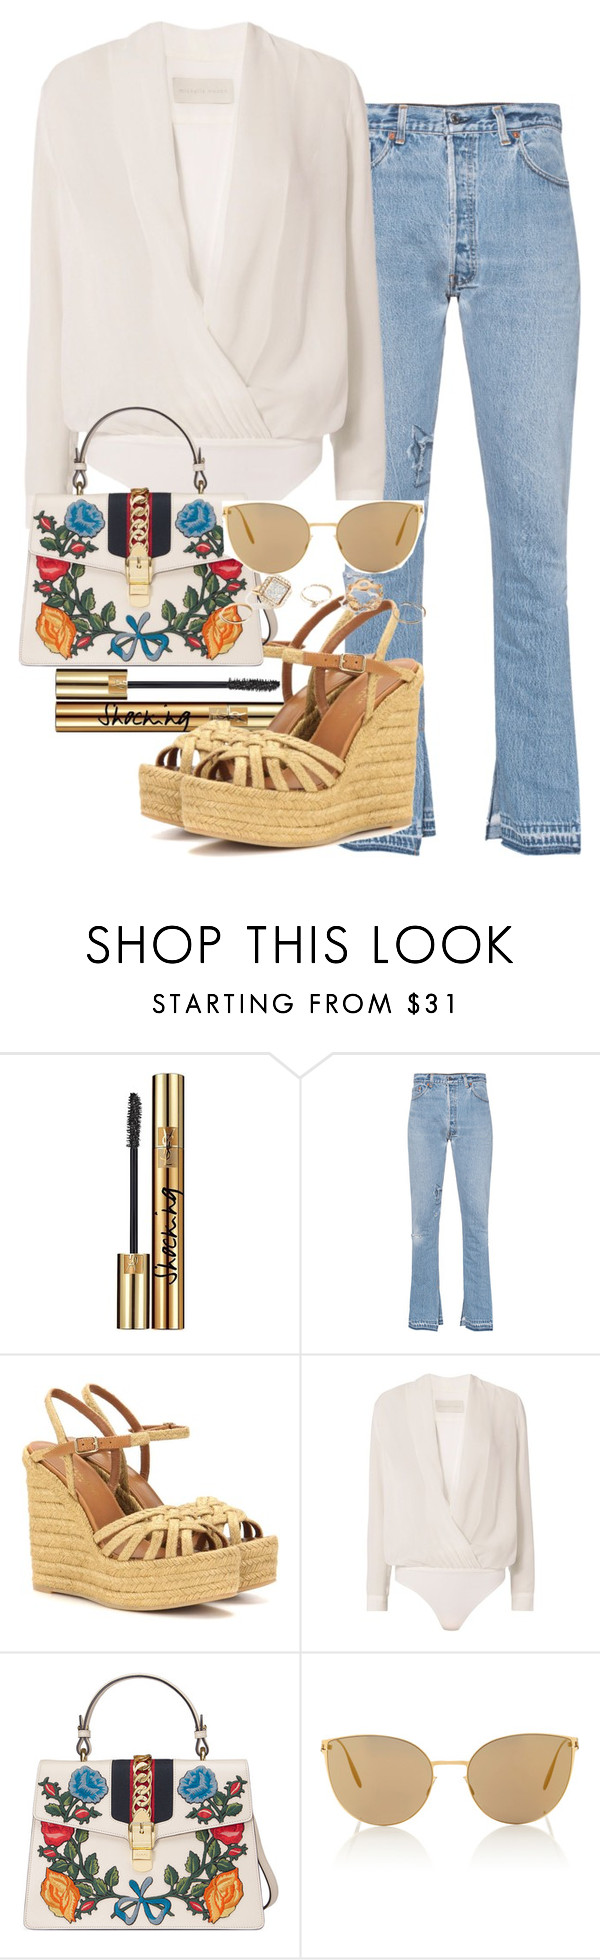 """""""Sem título #5502"""" by lguimaraes ❤ liked on Polyvore featuring Yves Saint Laurent, RE/DONE, Michelle Mason, Gucci, Mykita and GUESS"""